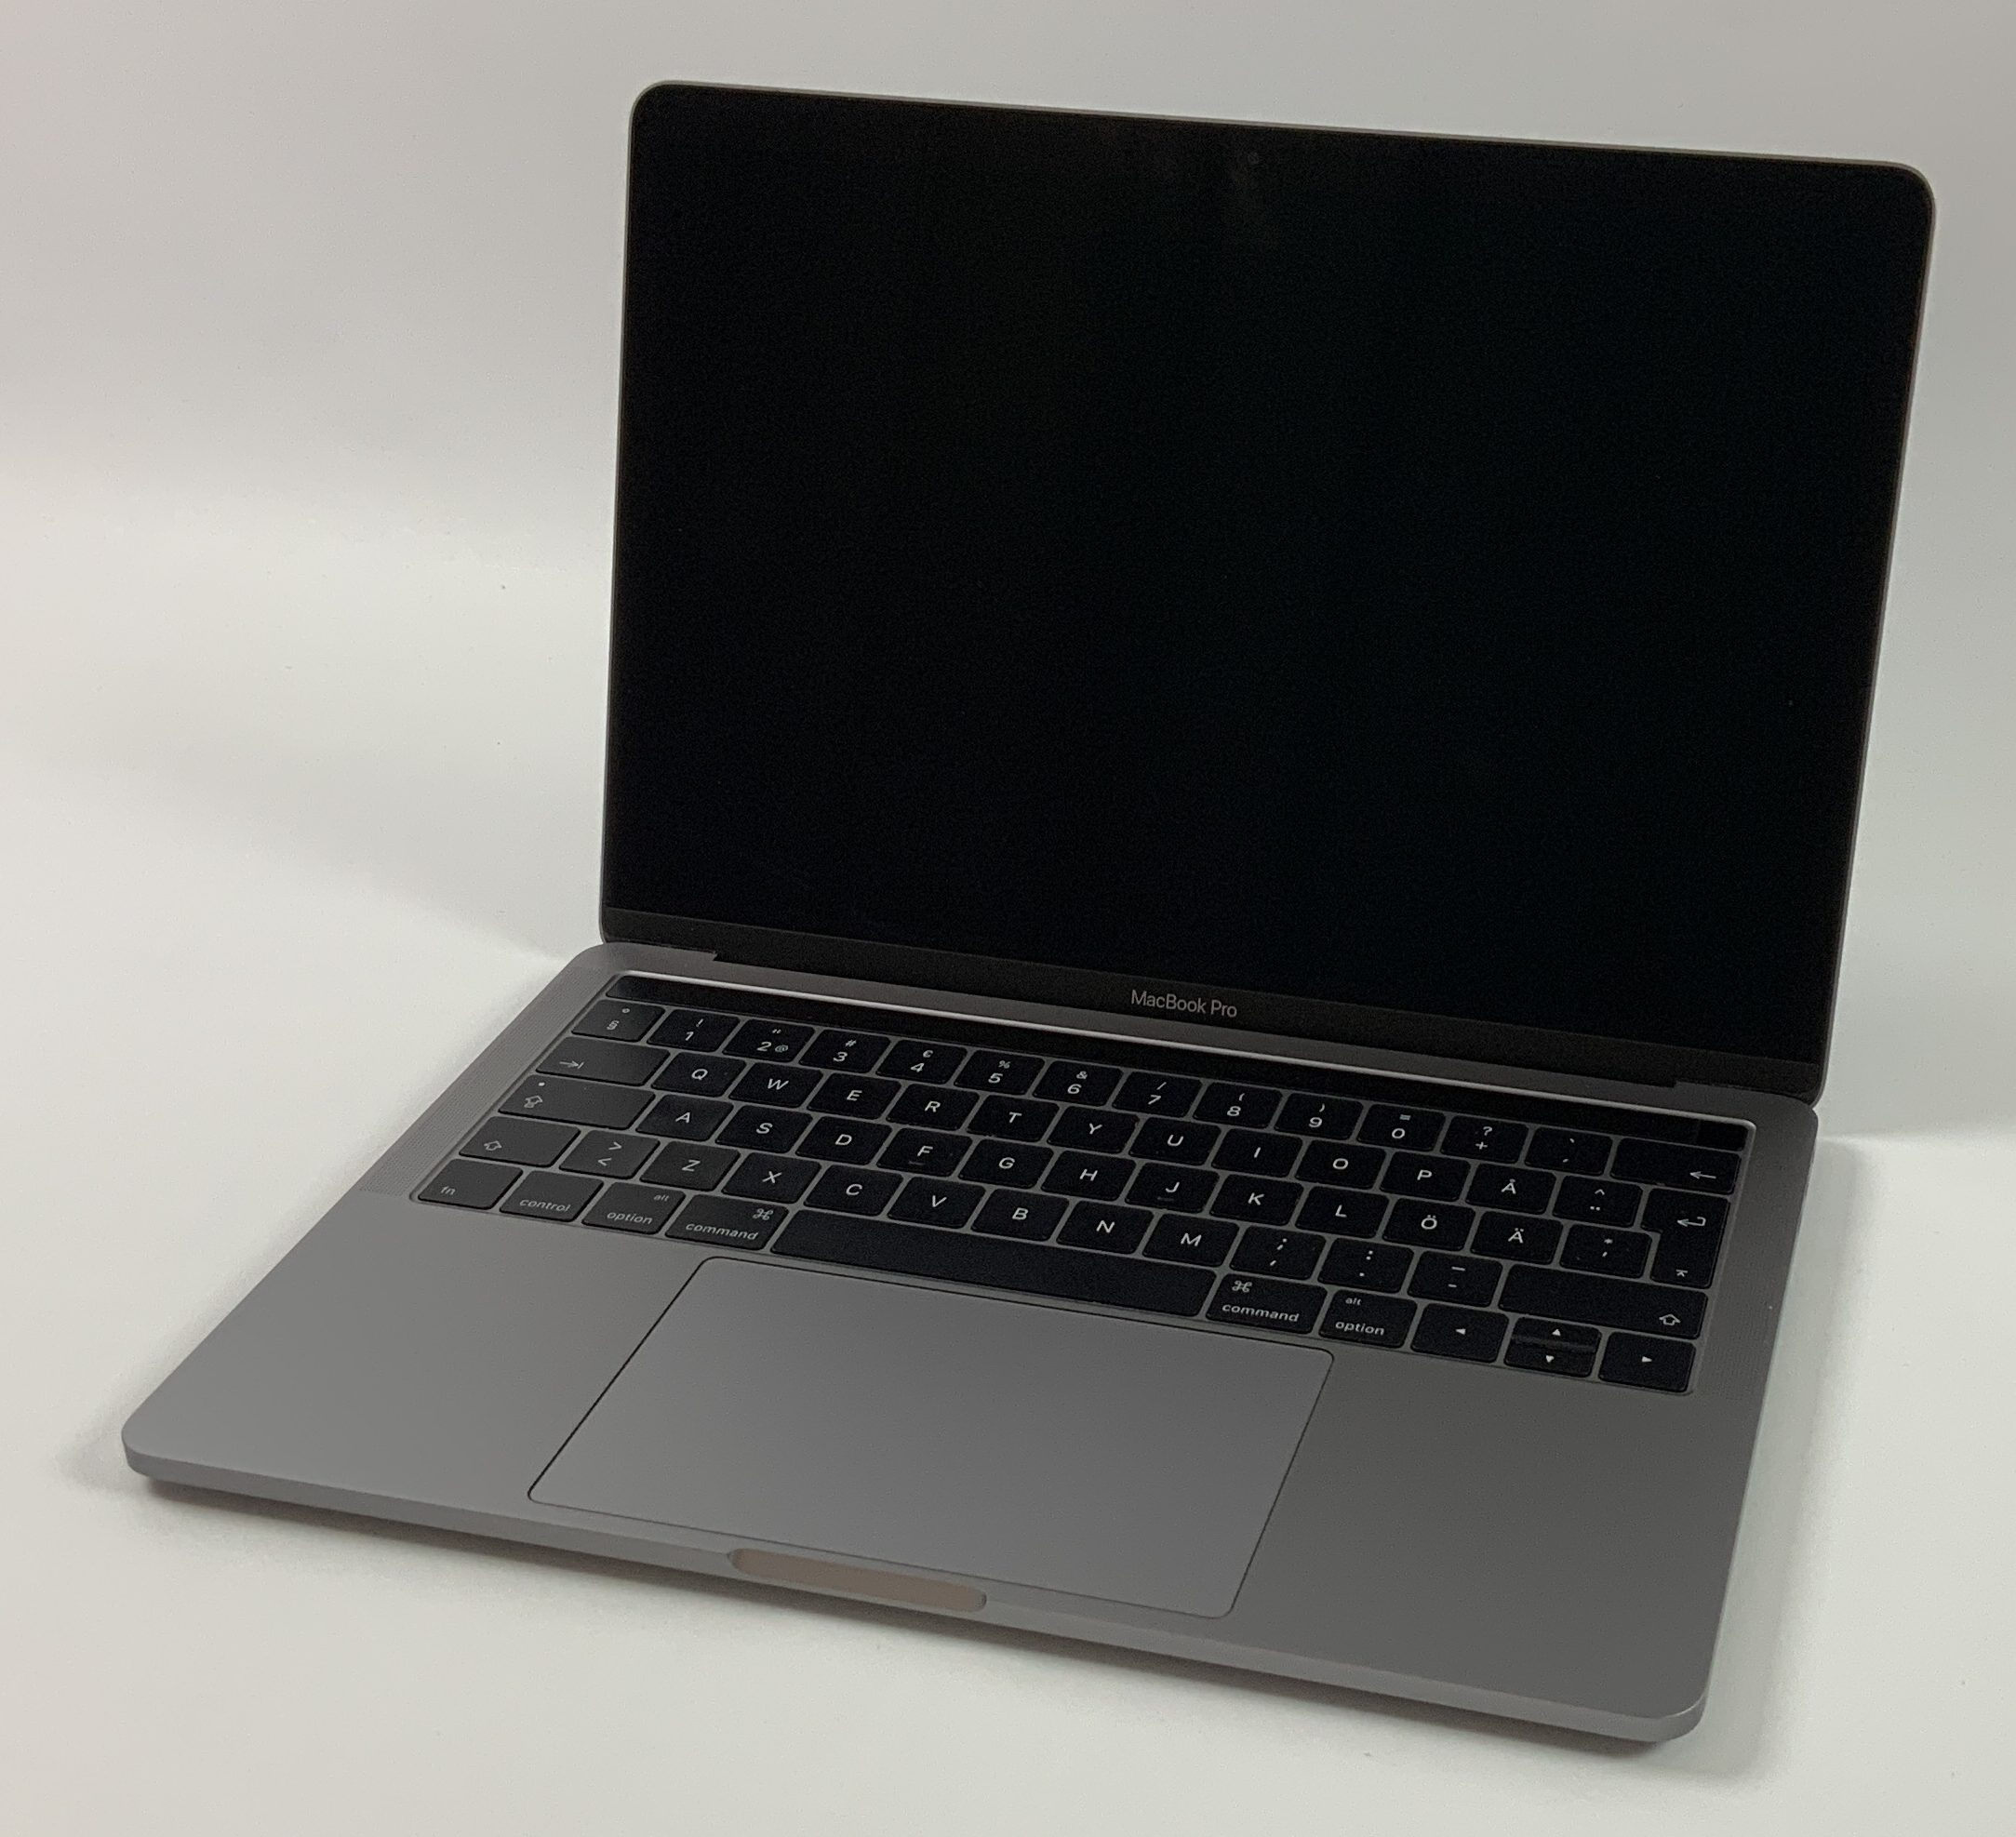 "MacBook Pro 13"" 4TBT Late 2016 (Intel Core i5 2.9 GHz 8 GB RAM 256 GB SSD), Space Gray, Intel Core i5 2.9 GHz, 8 GB RAM, 256 GB SSD, imagen 1"